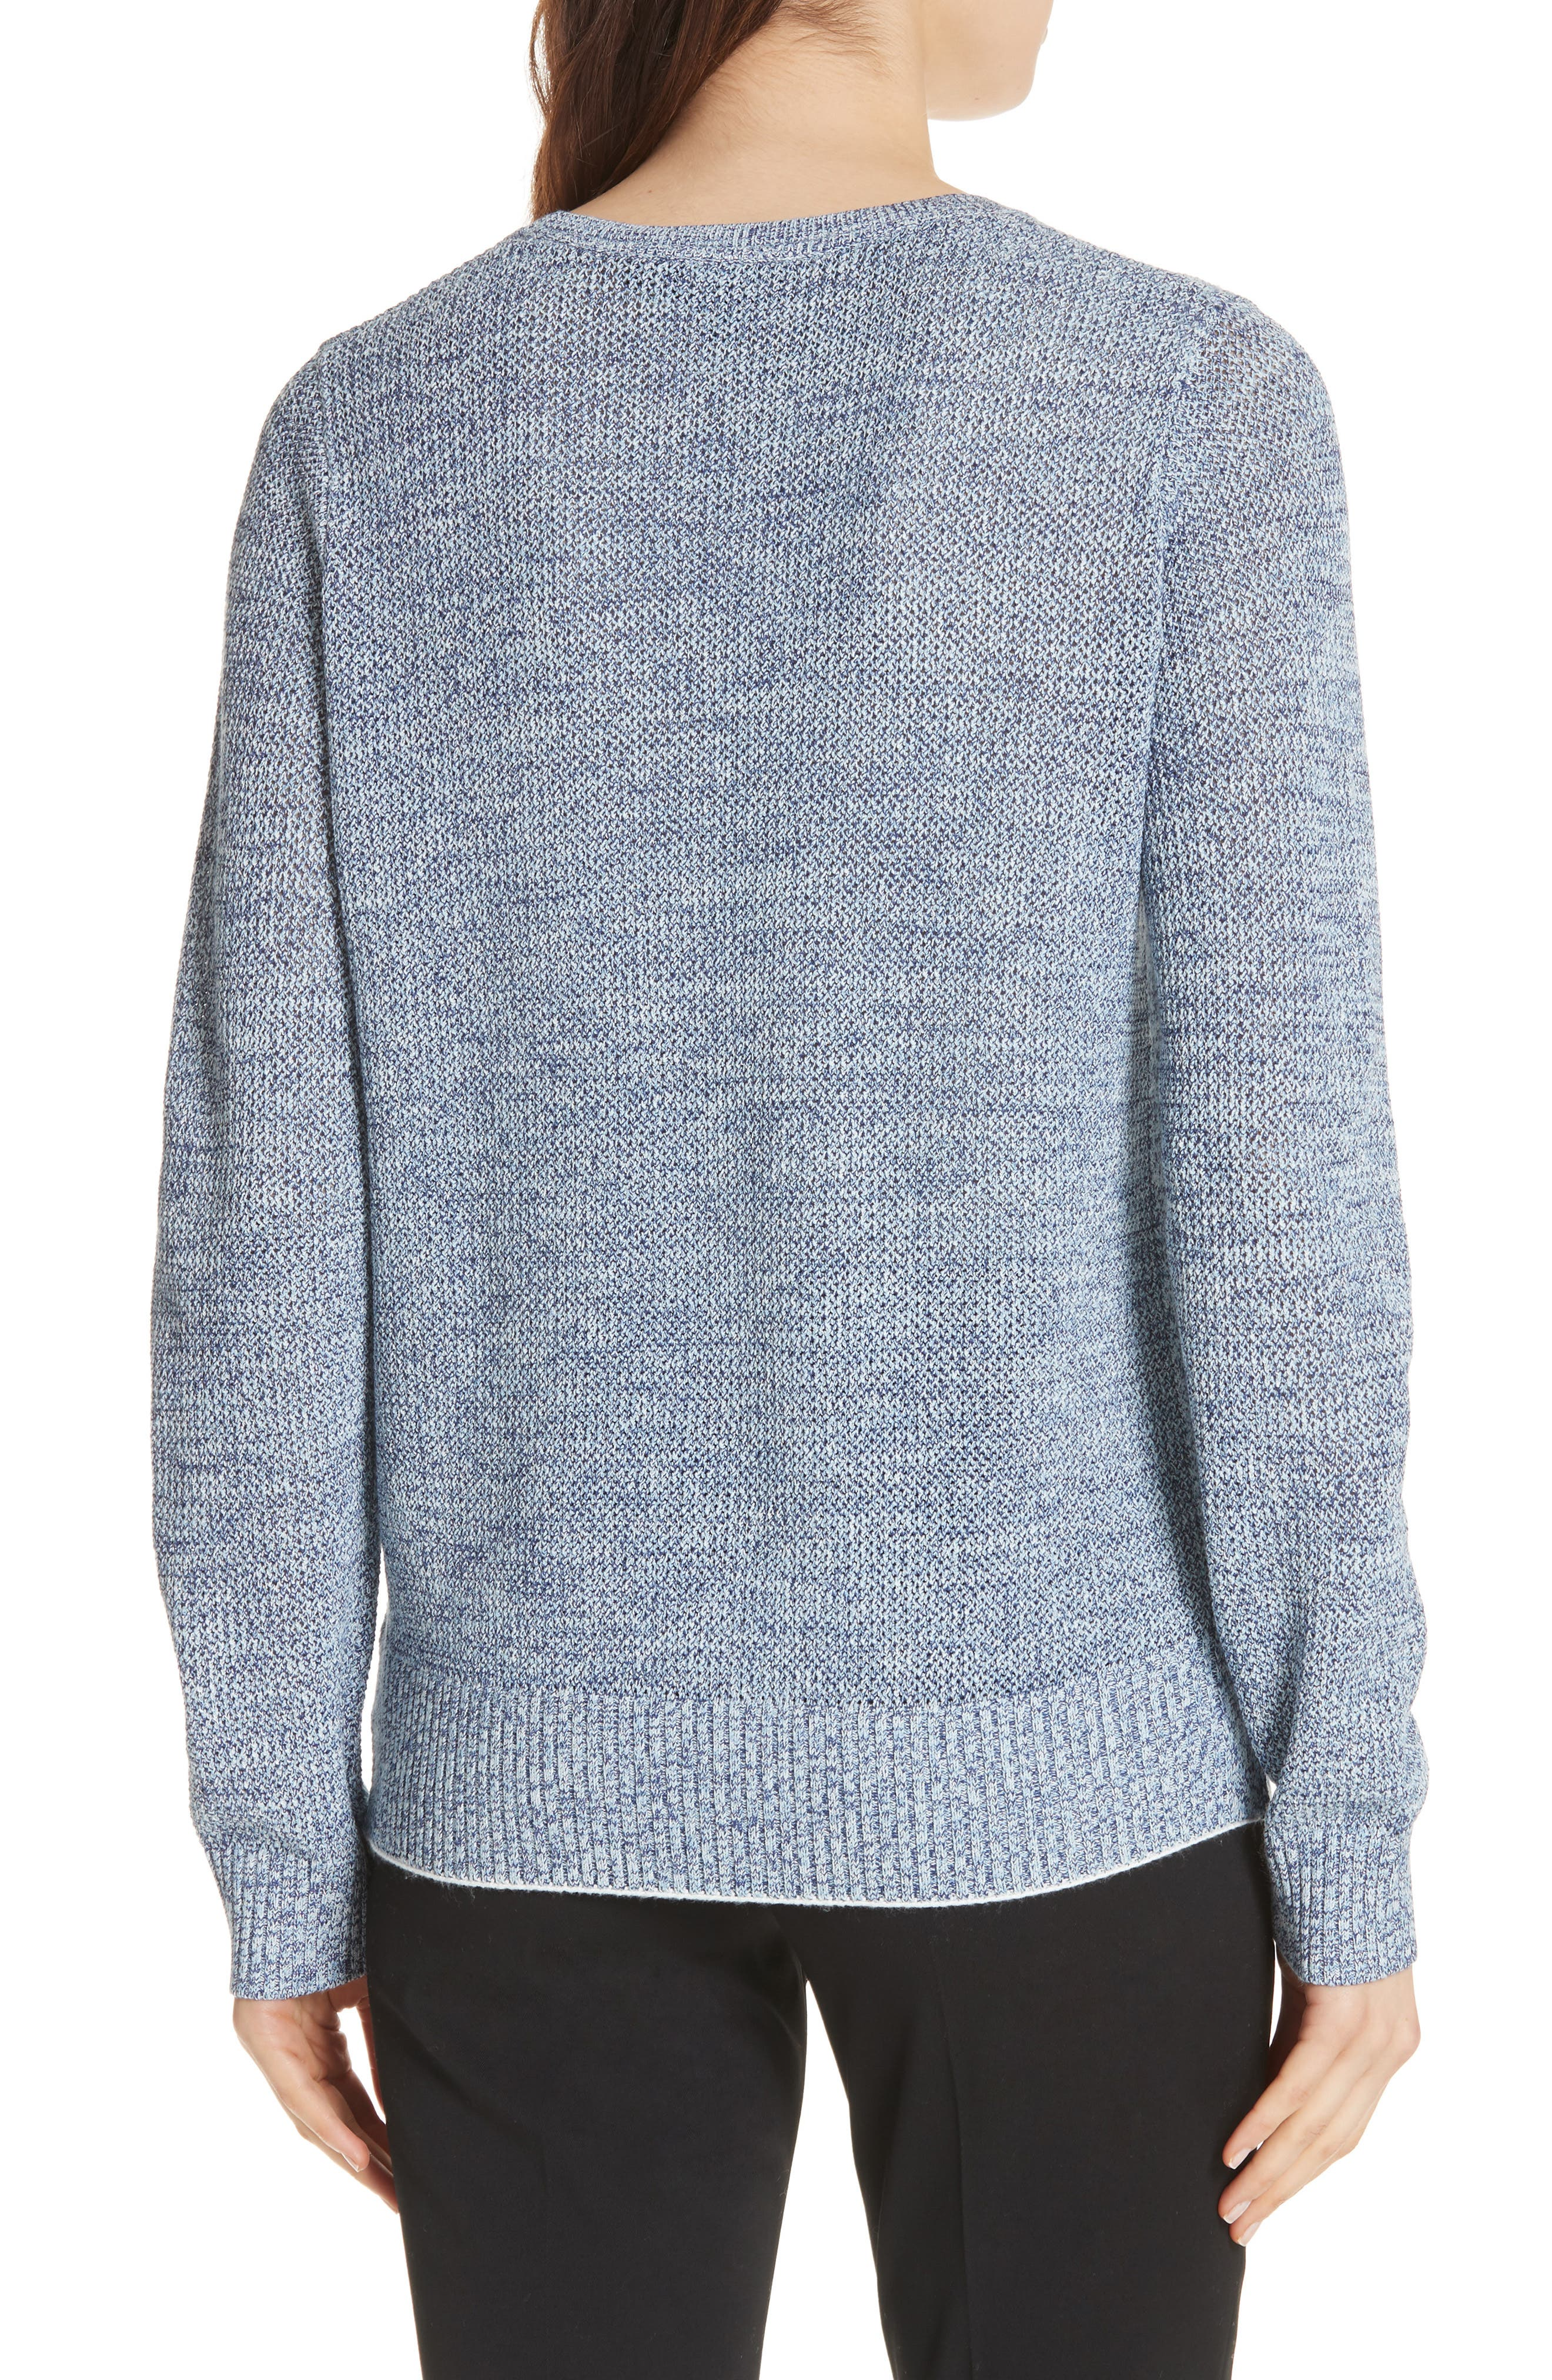 Prosecco Marled Sweater,                             Alternate thumbnail 2, color,                             404